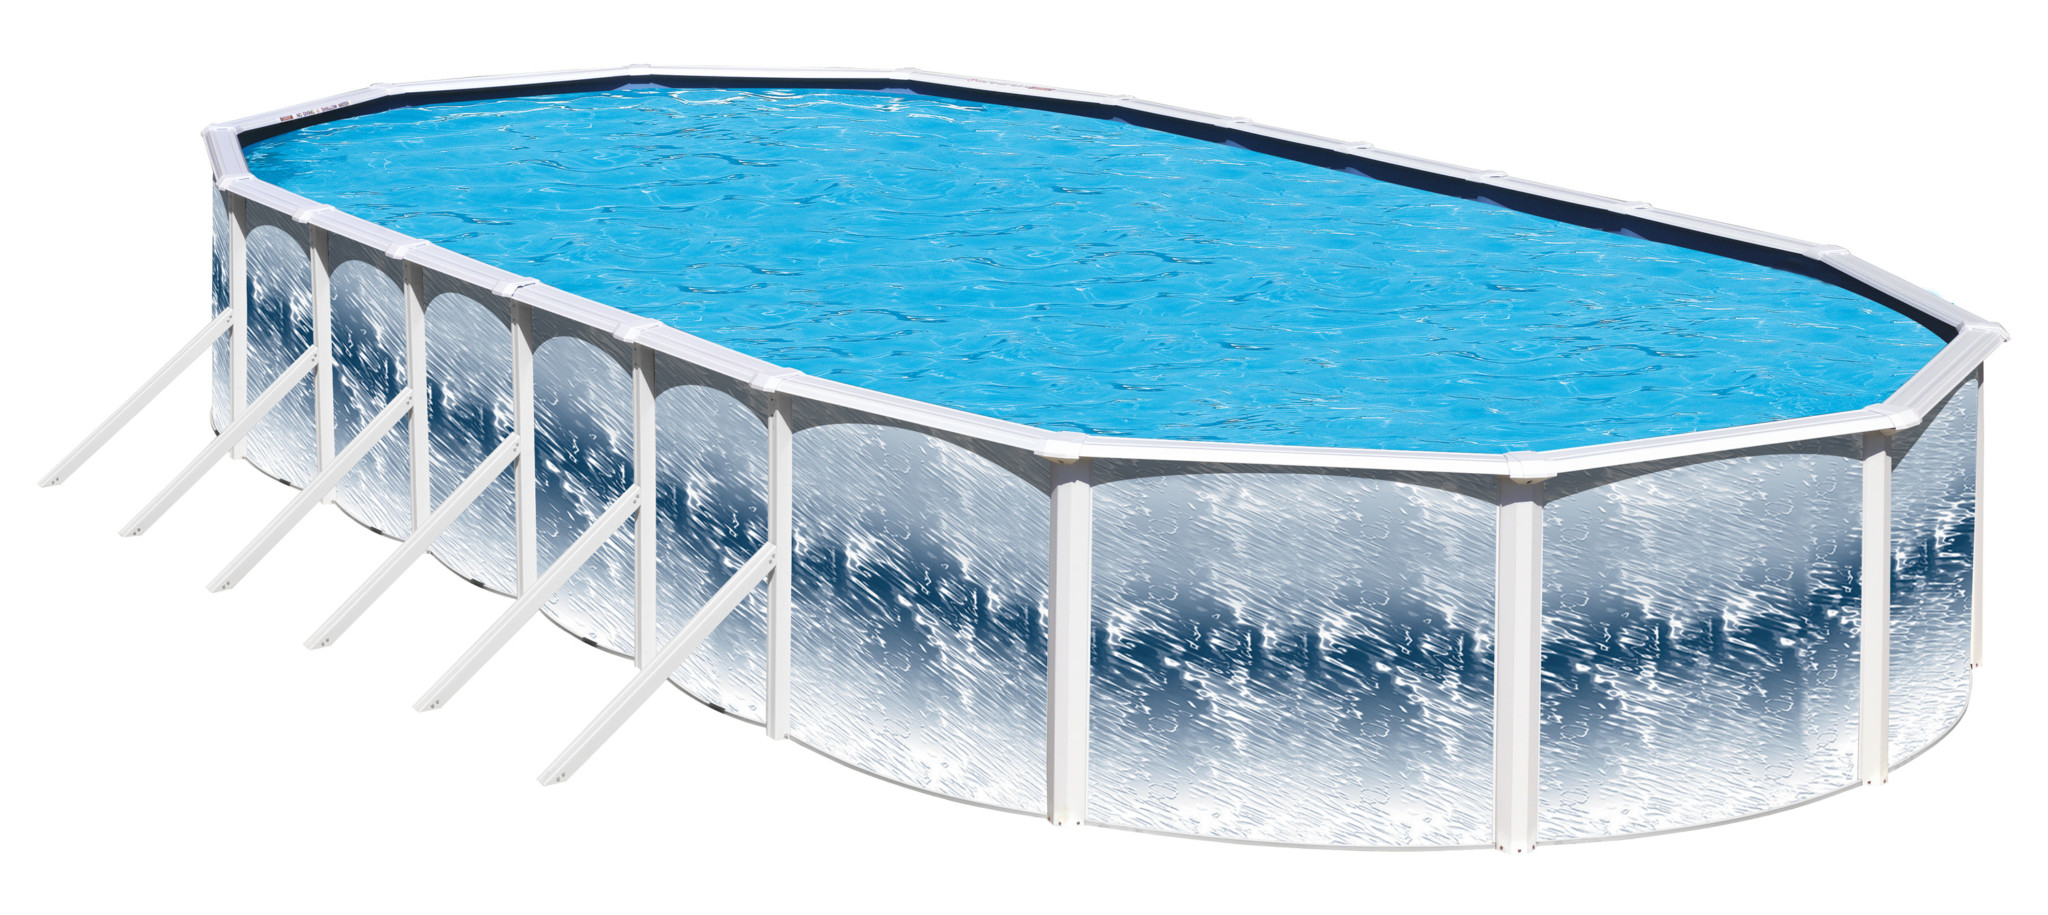 Swimming Pool Discounters48 In Swimmaster 6in Steel Frame Pool 2018